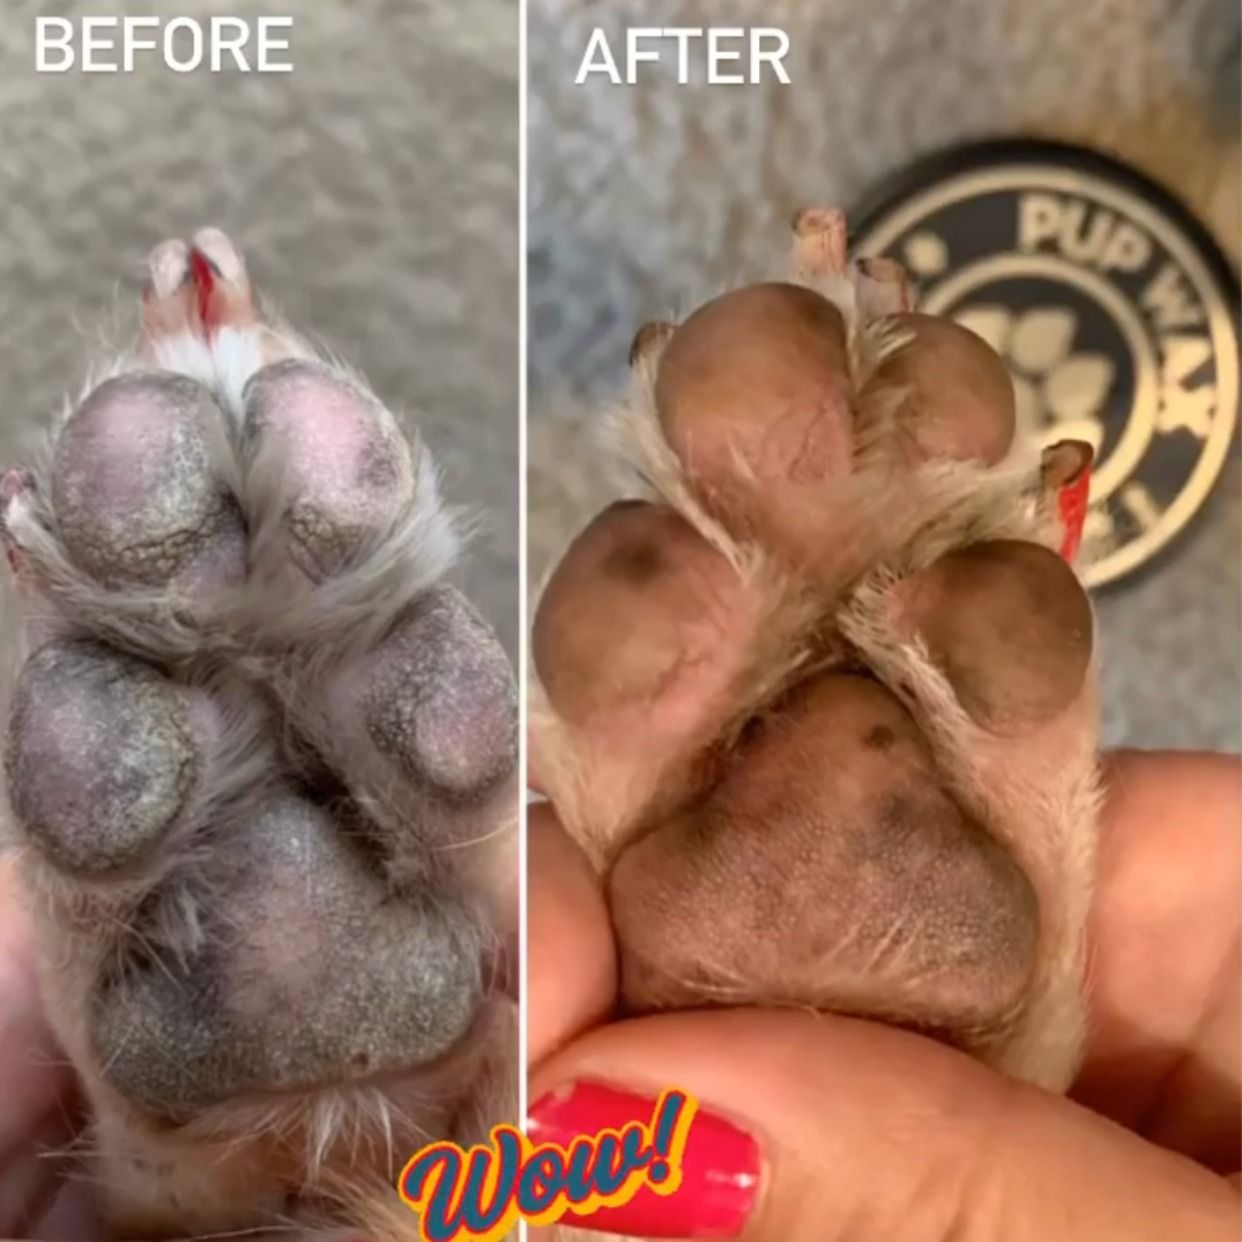 Organic Healing Balms For Dry Dog Paws In 2020 Cracked Dog Paws Dry Paws Dry Dog Paws